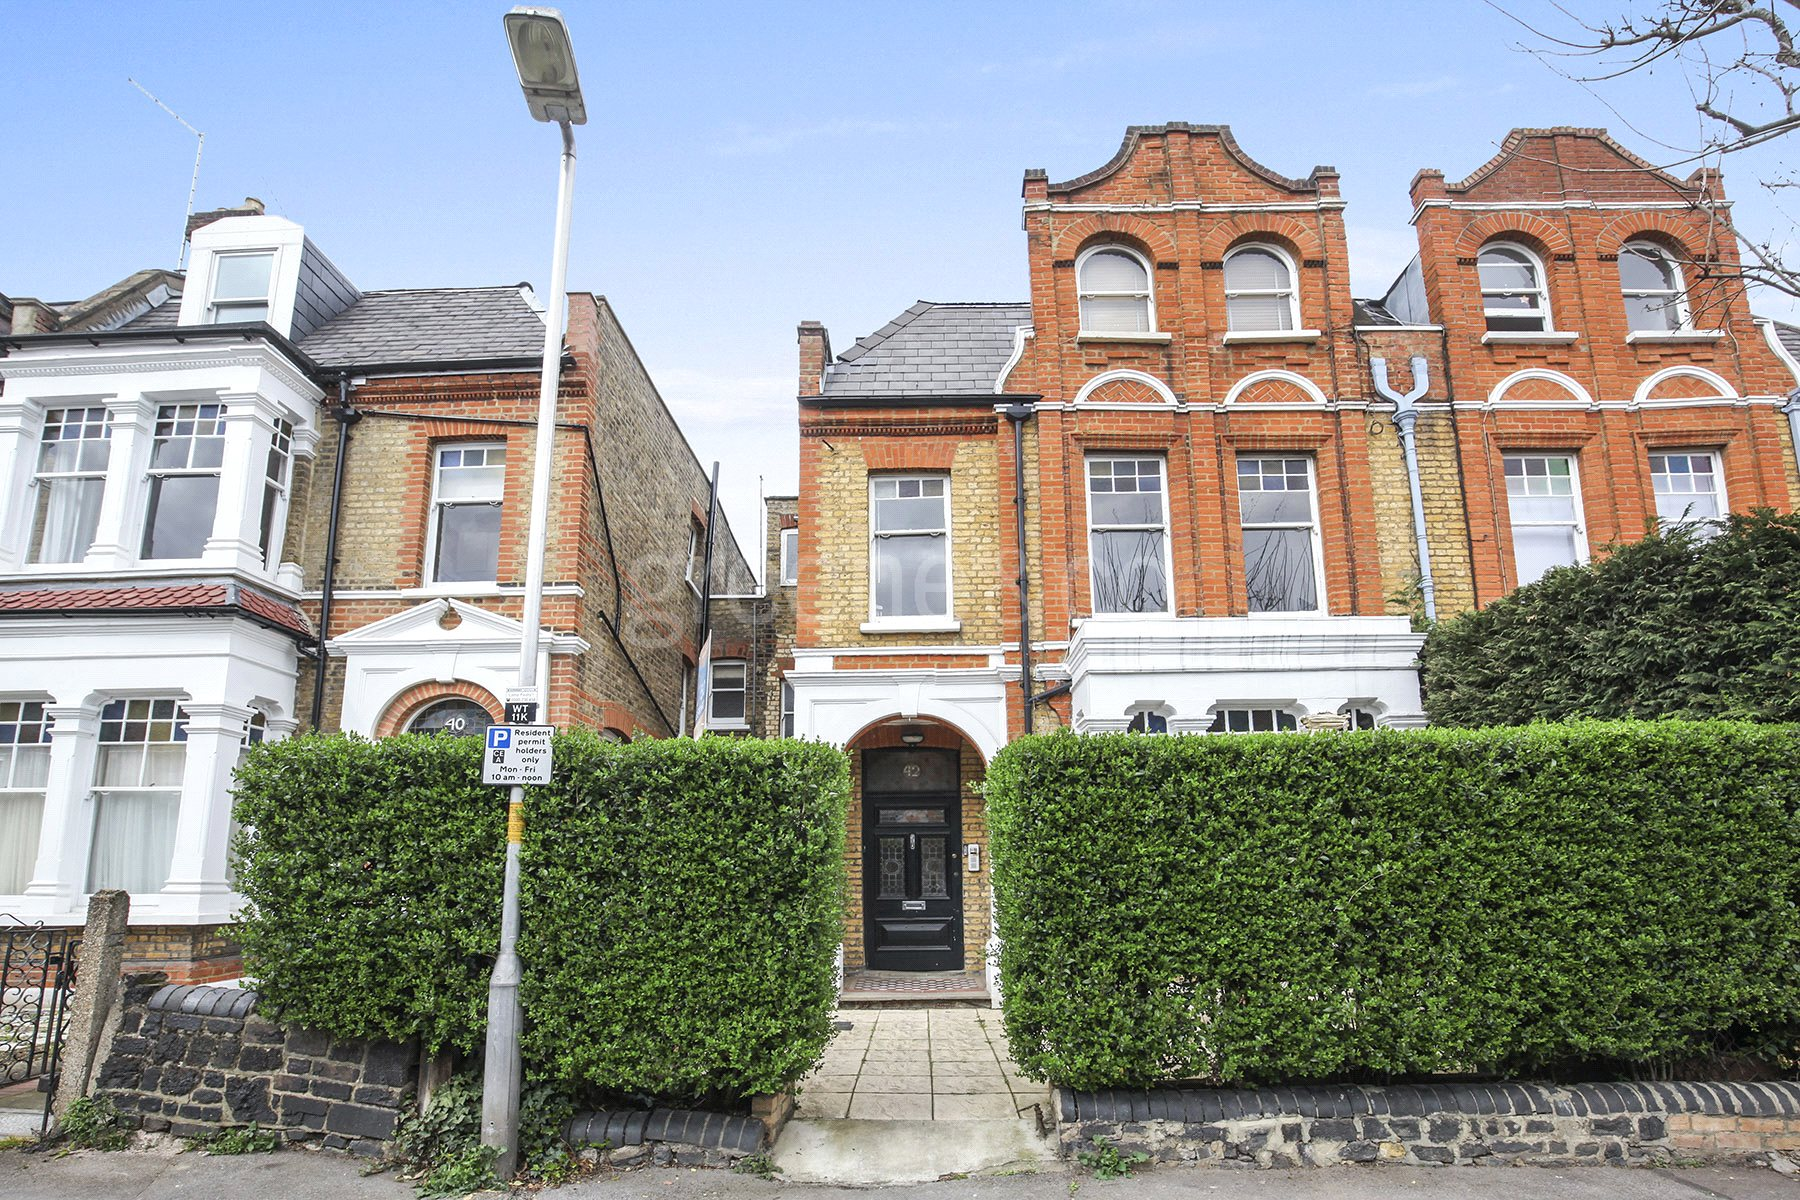 2 Bedrooms Flat for sale in Weston Park, Crouch End, London, N8